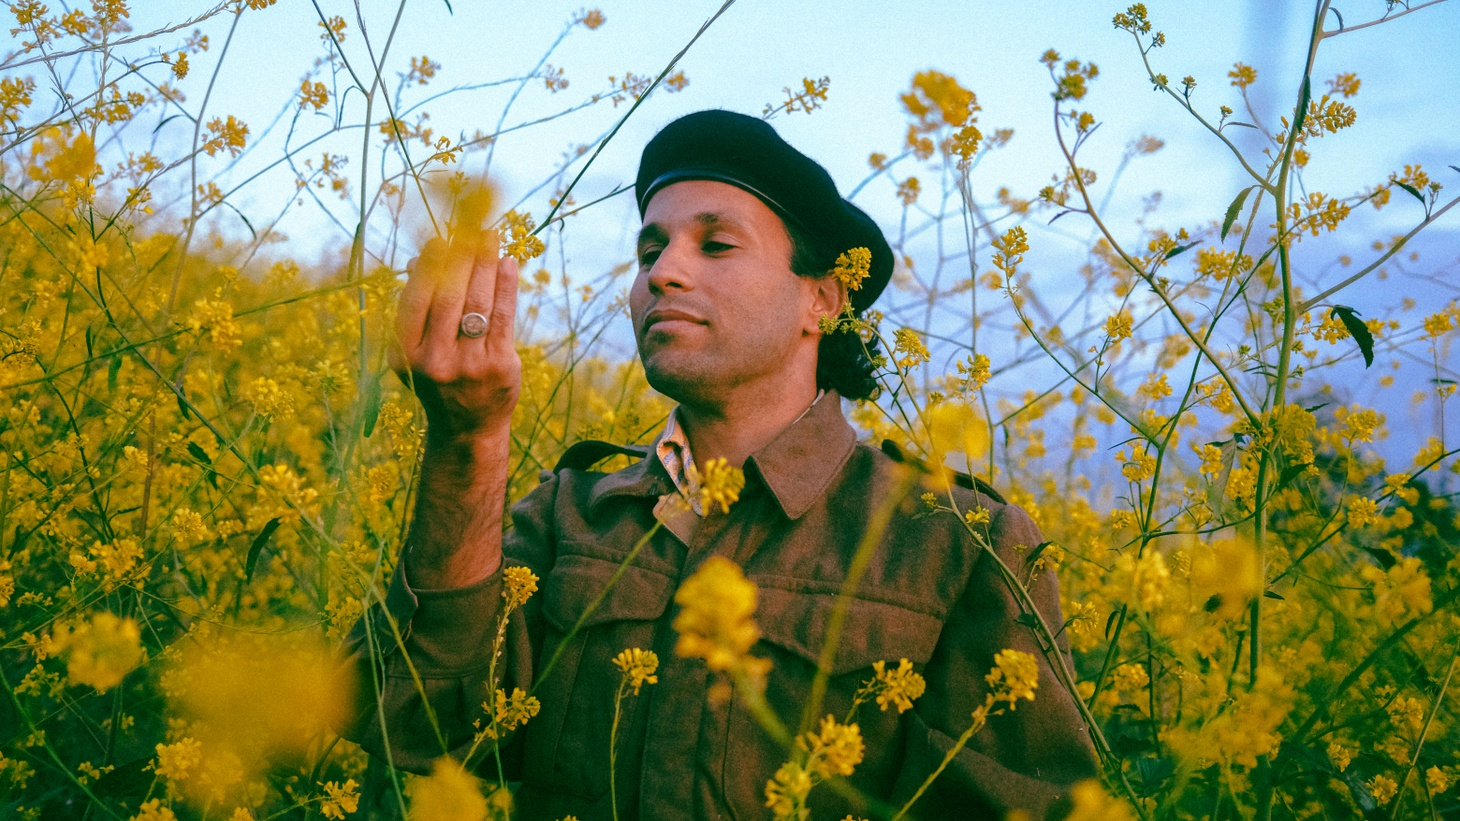 The Puerto Rican, LA-based Pachy García, or Pachyman to his fans, was weaned on local reggae heroes and classic dub. Now he creates his own style of dub influenced by Caribbean rhythms.